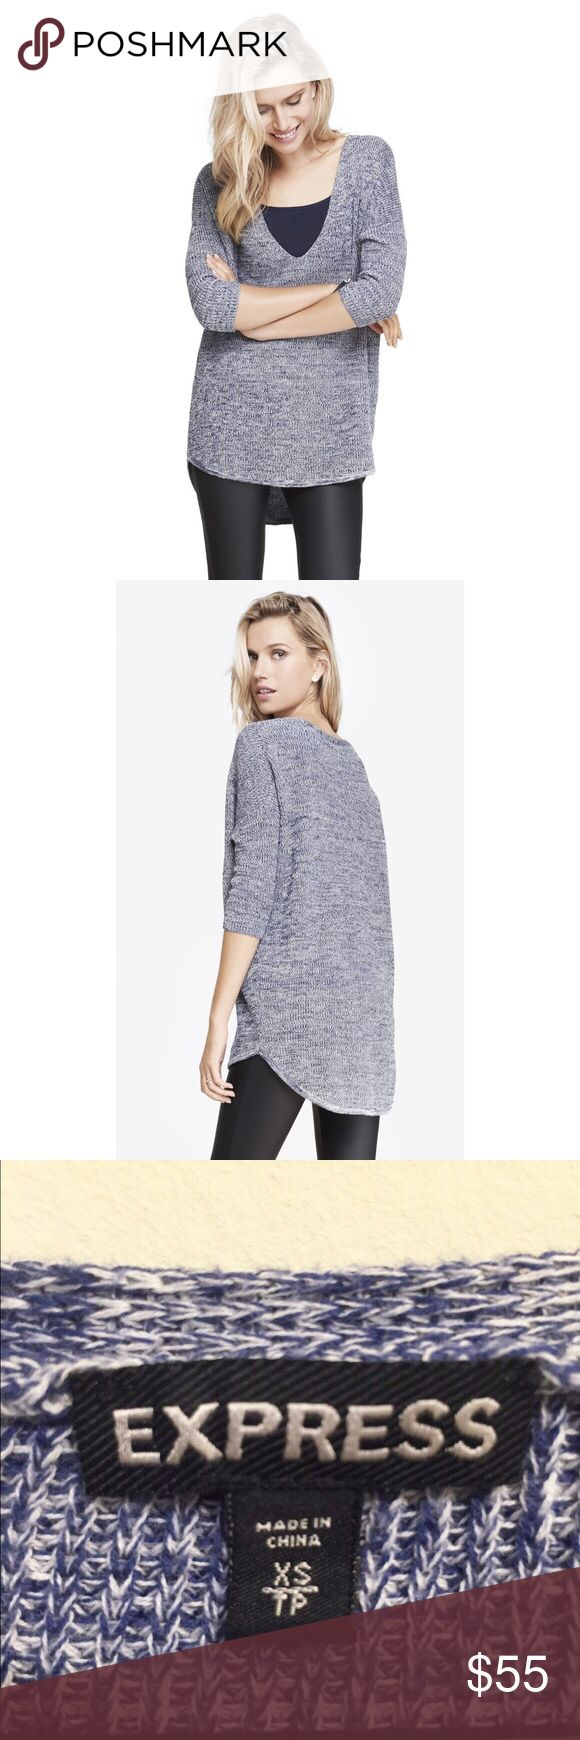 """✨Women's Blue Marled London Sweater✨ ✨""""London sweater. Perfect timing, as this hi-lo look makes leggings totally user friendly, offering long backside coverage and soft style. Three quarter sleeves and dropped shoulders add drama to the cozy look. Cheers to easy! Rounded V neckline. Dropped shoulders with three quarter length sleeves. Vertical ribbed shaker stitch. Slimming stitch detail at waist. Hi-lo ribbed hem, back falls to just above knee. Cotton; Machine wash. Imported.""""✨ Express…"""